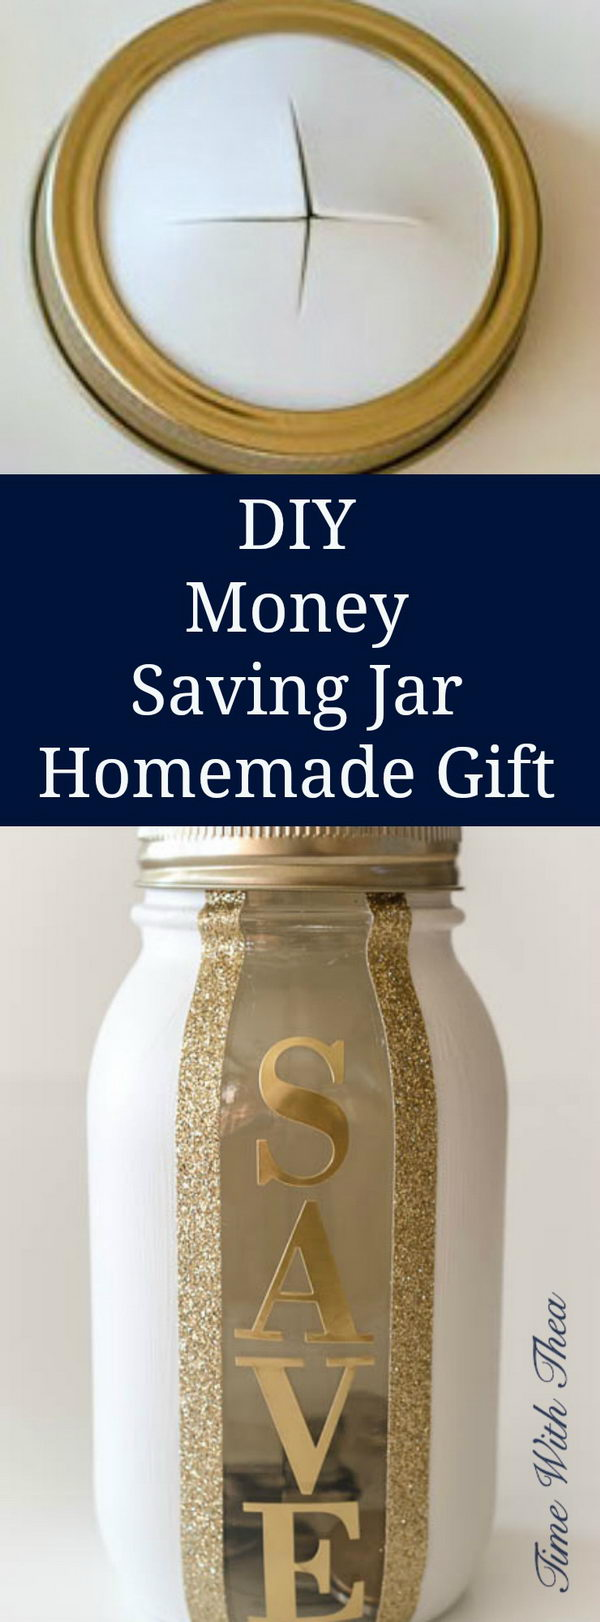 DIY Money Saving Jar Homemade Gift.